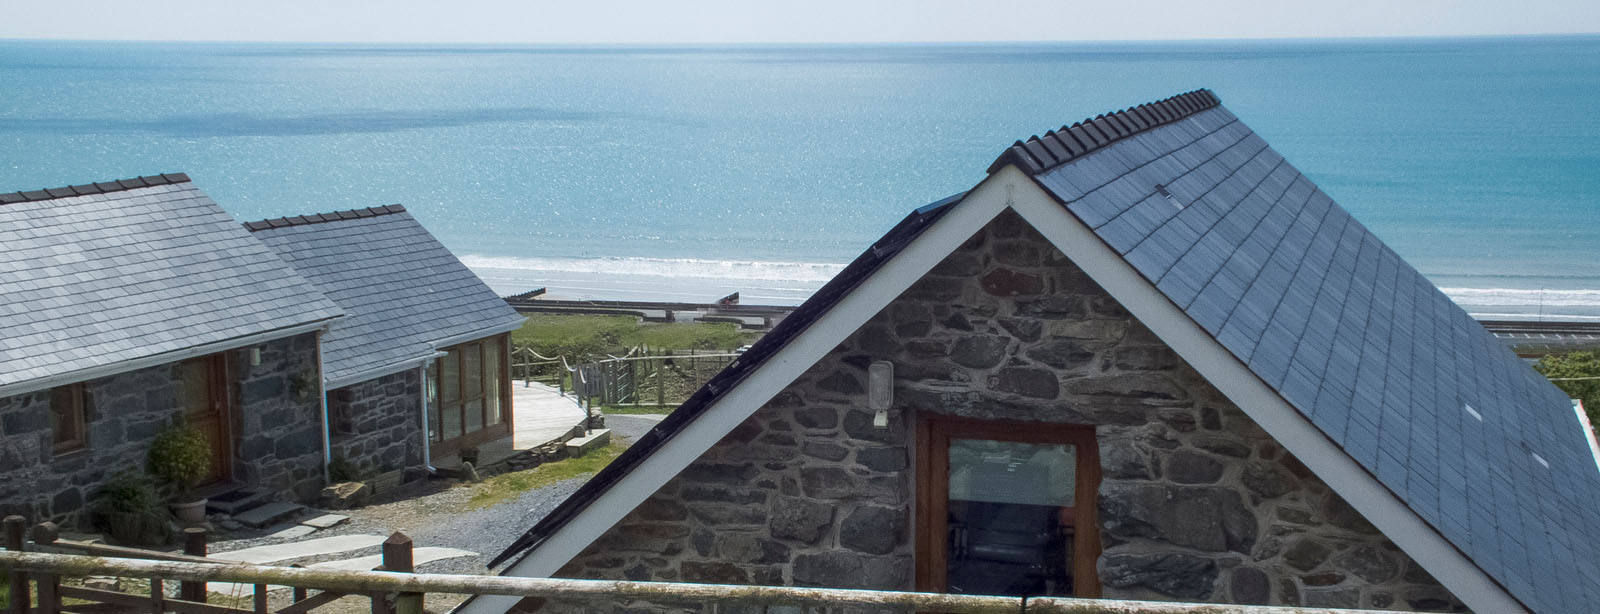 BEAUTIFUL WALES LUXURY HOLIDAY COTTAGES Barn Conversions Overlooking The  Sea On An Equestrian Property In Llanaber, Barmouth, North Wales